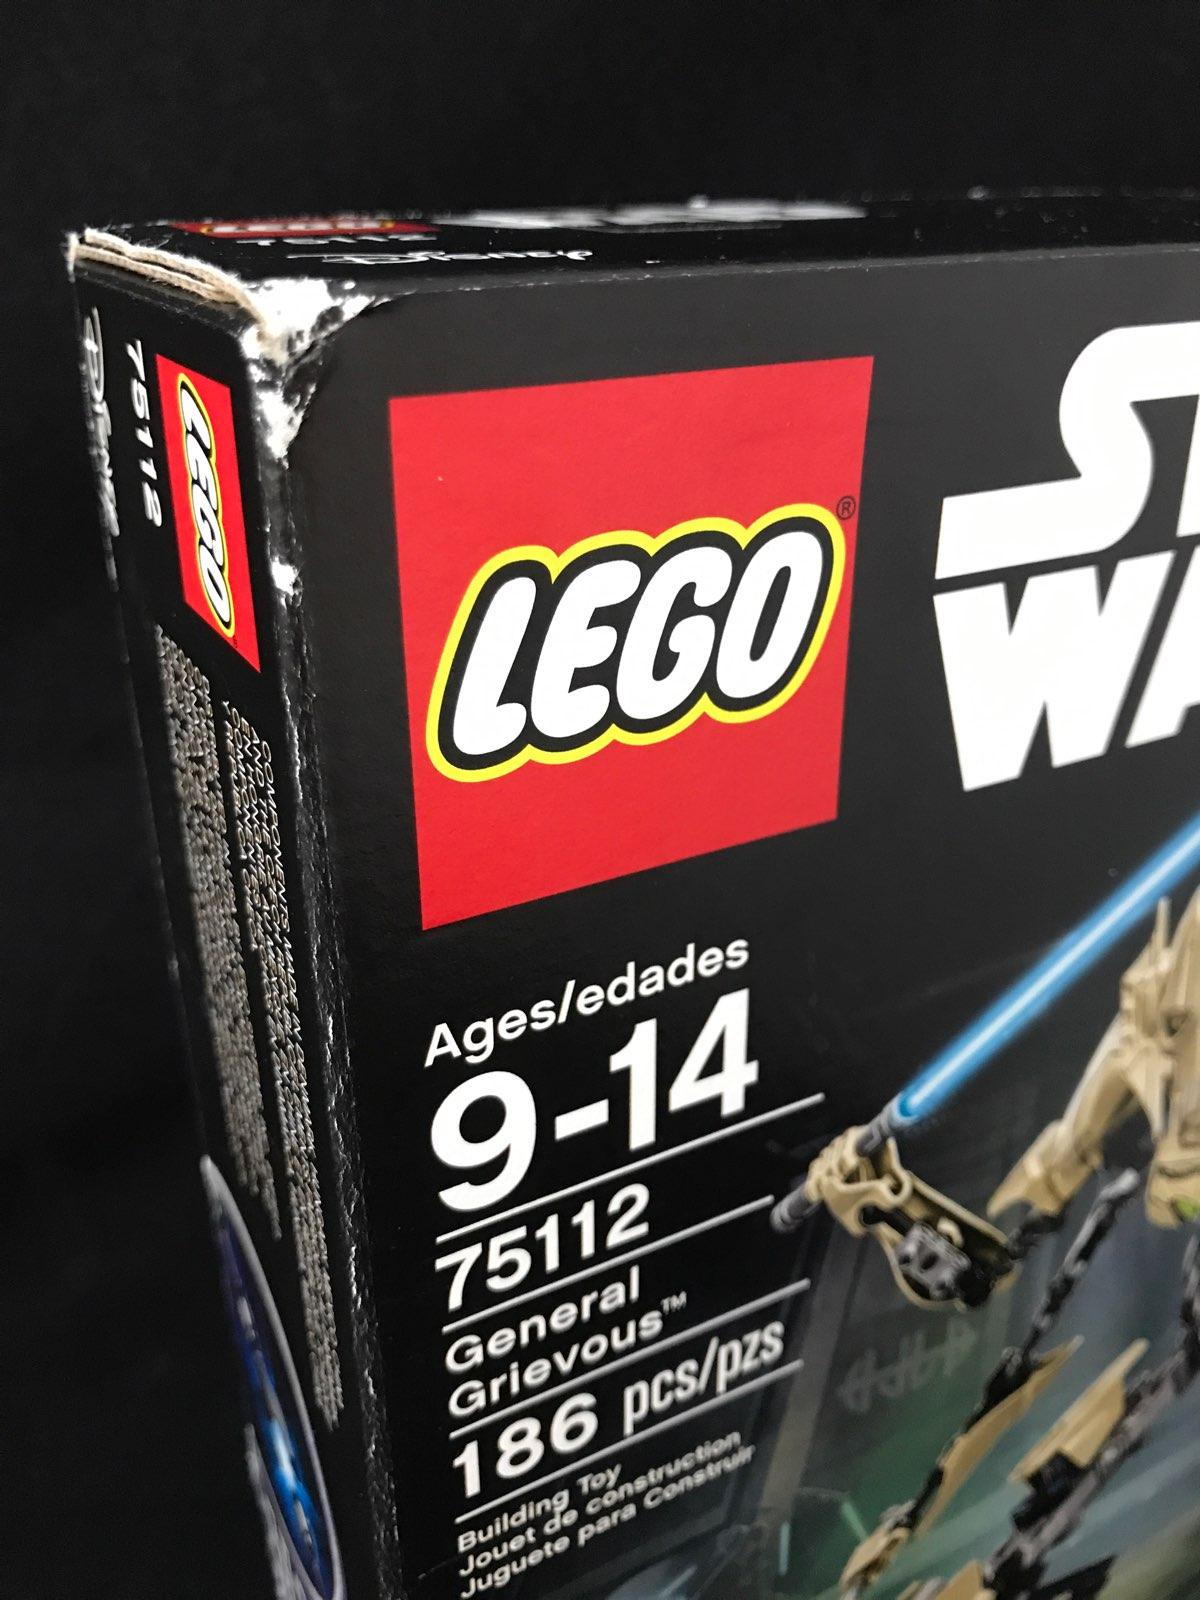 LEGO 75112 General Grievous Star Wars